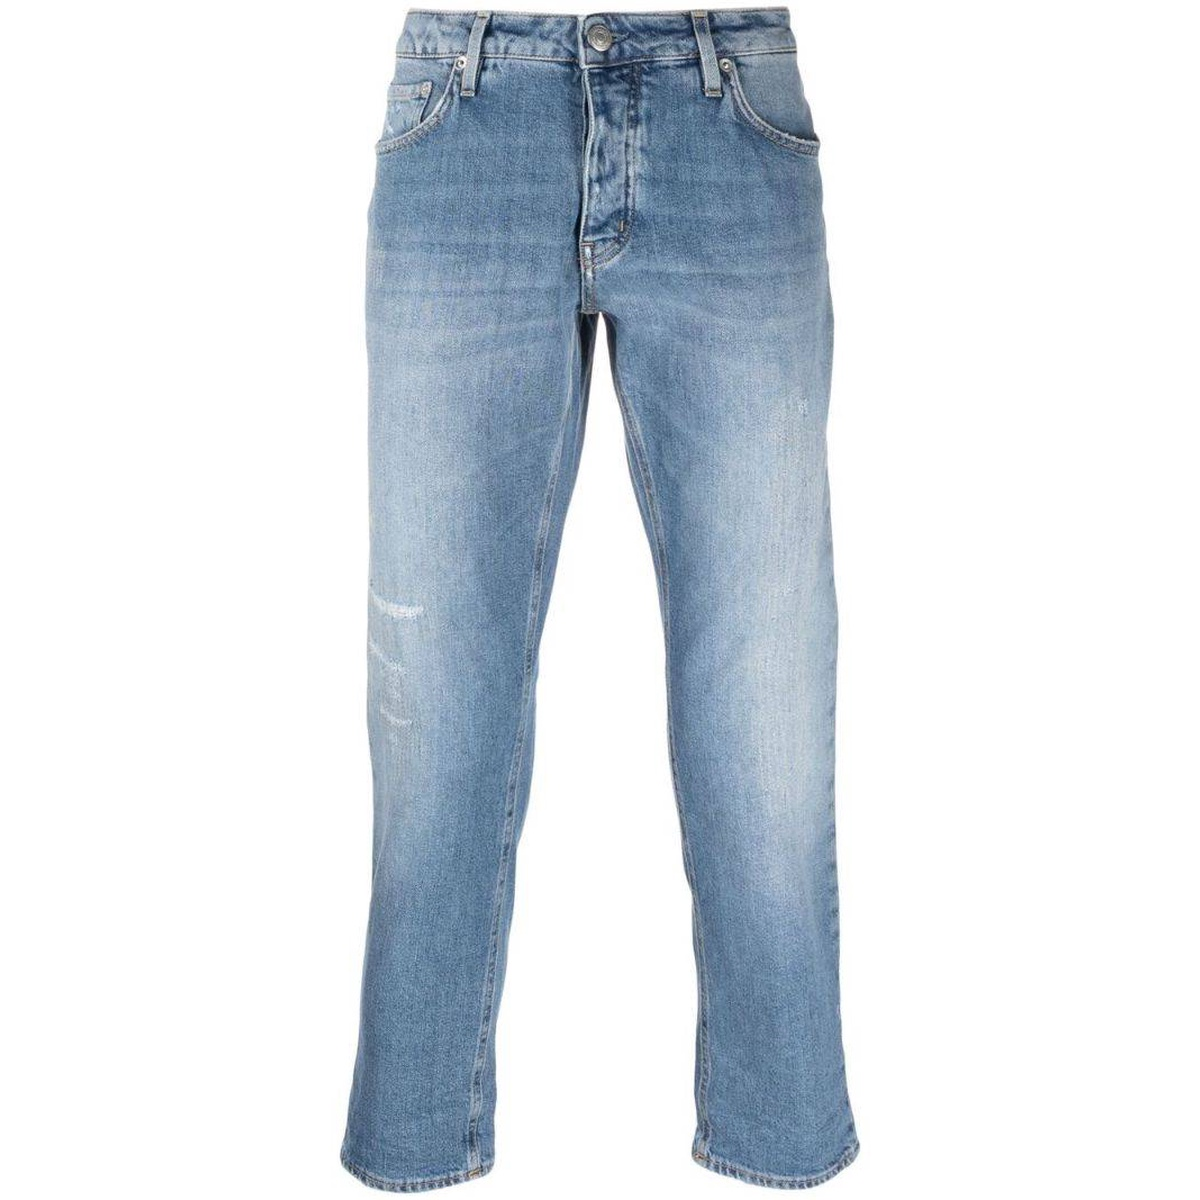 Purchasing haikure middle waist ankle exposed jeans 2021 new luxury pants trend imitation old simple fashion